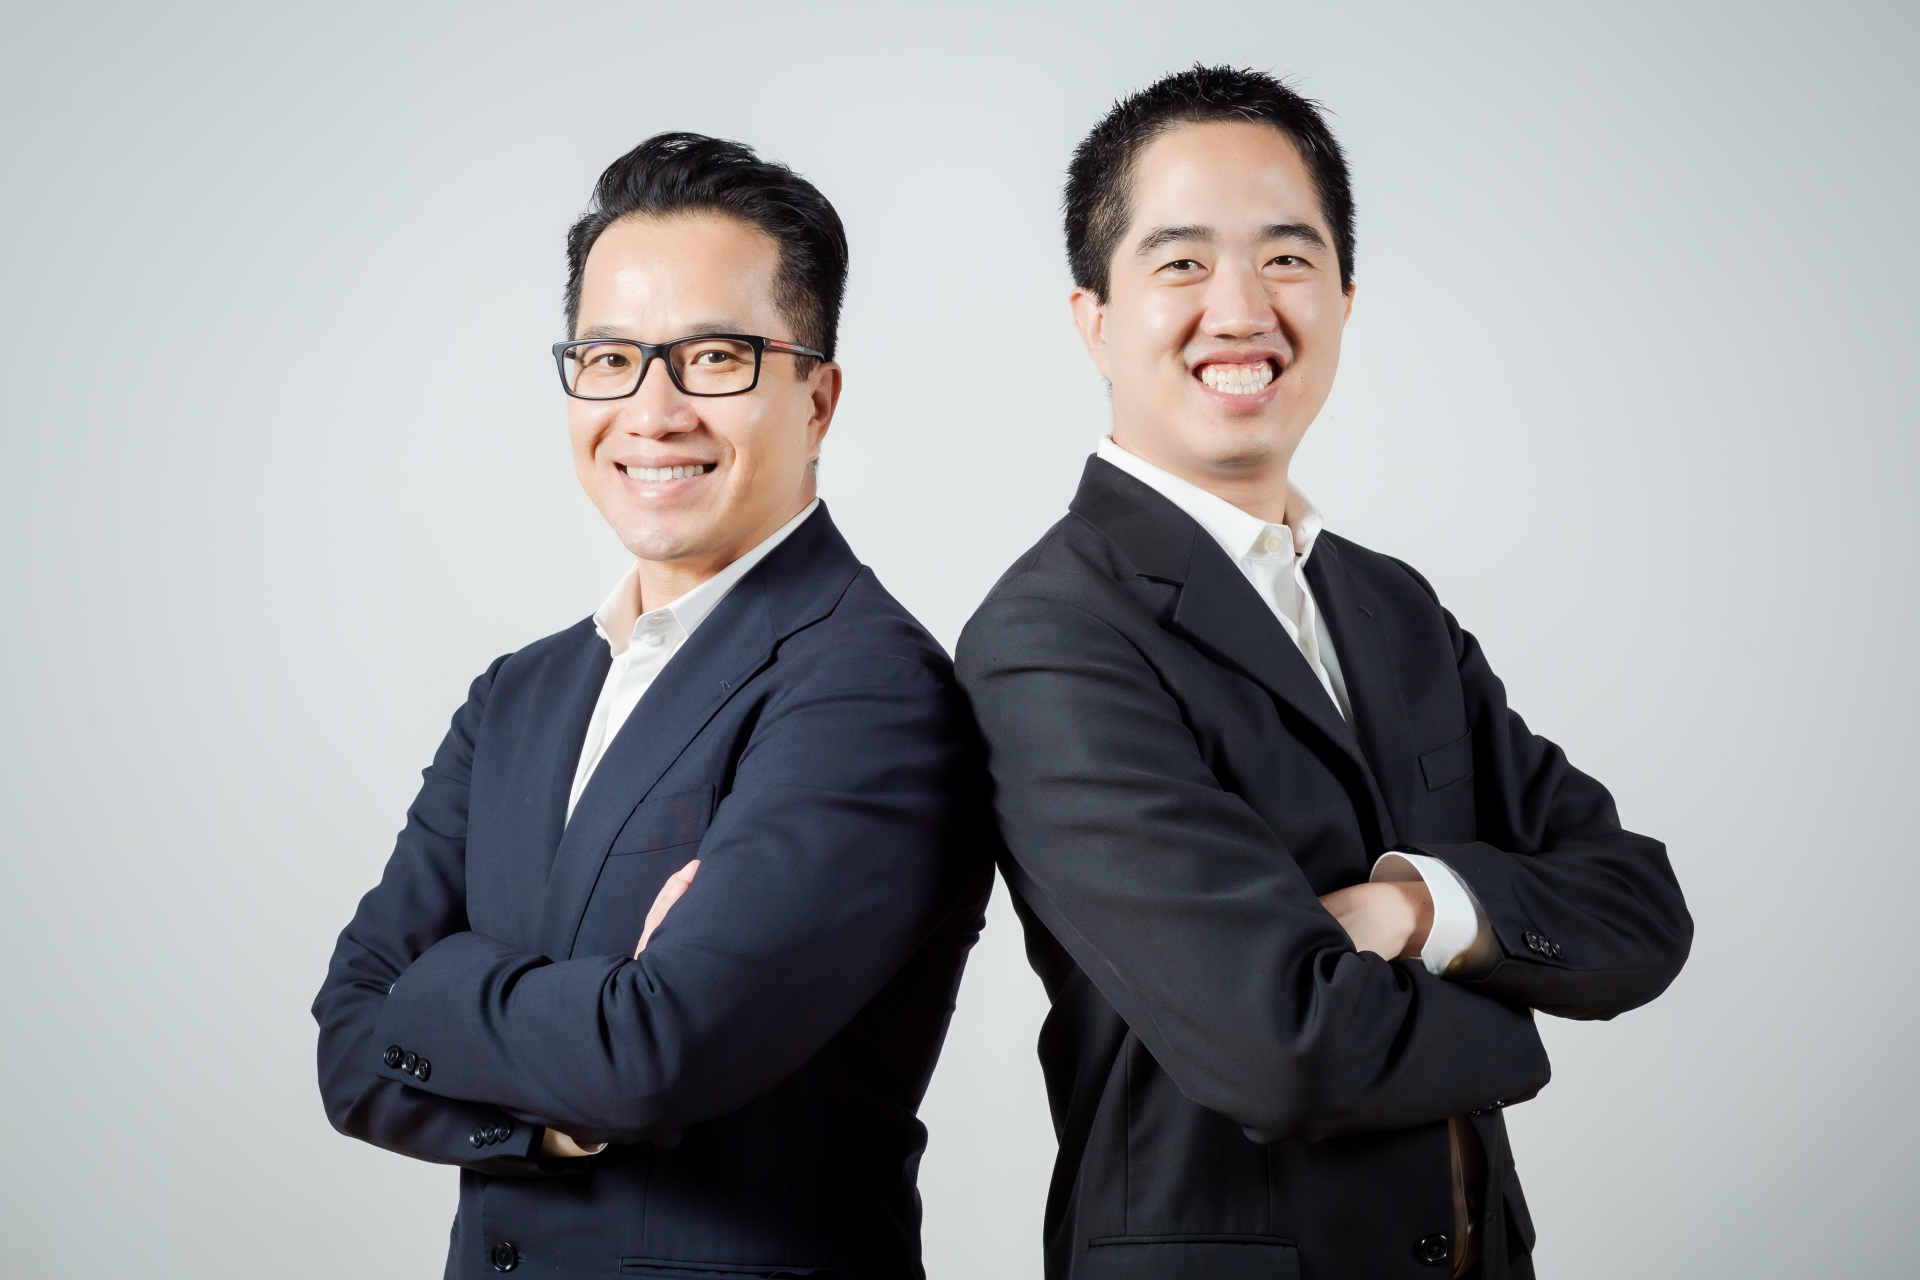 ascend vietnam venture capital firm launched to invest in vietnams startup ecosystem